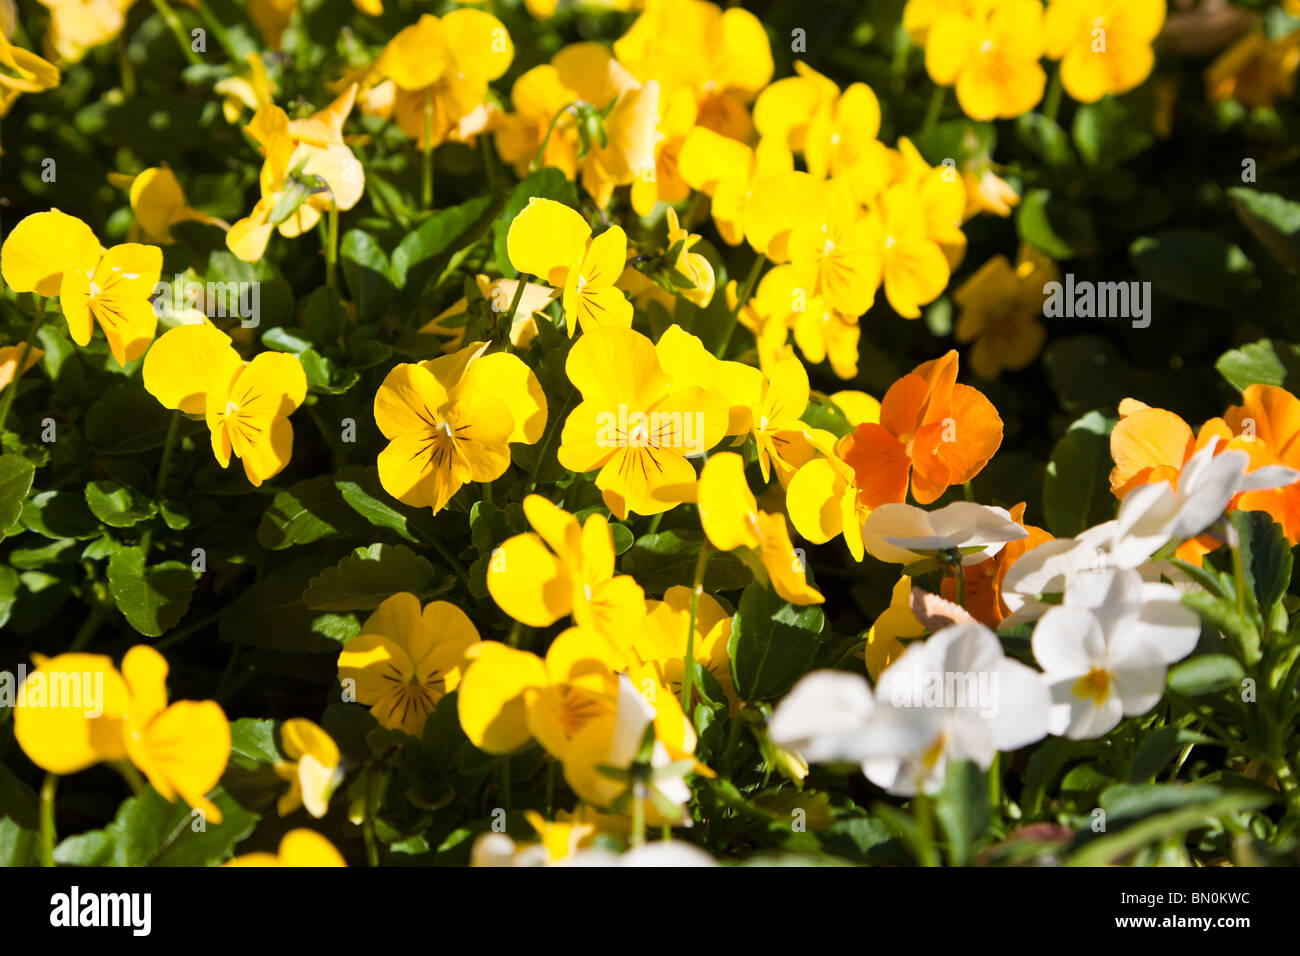 Orlando, FL - Jan 2009 - Colorful yellow, white and orange pansies in a garden in central Florida - Stock Image